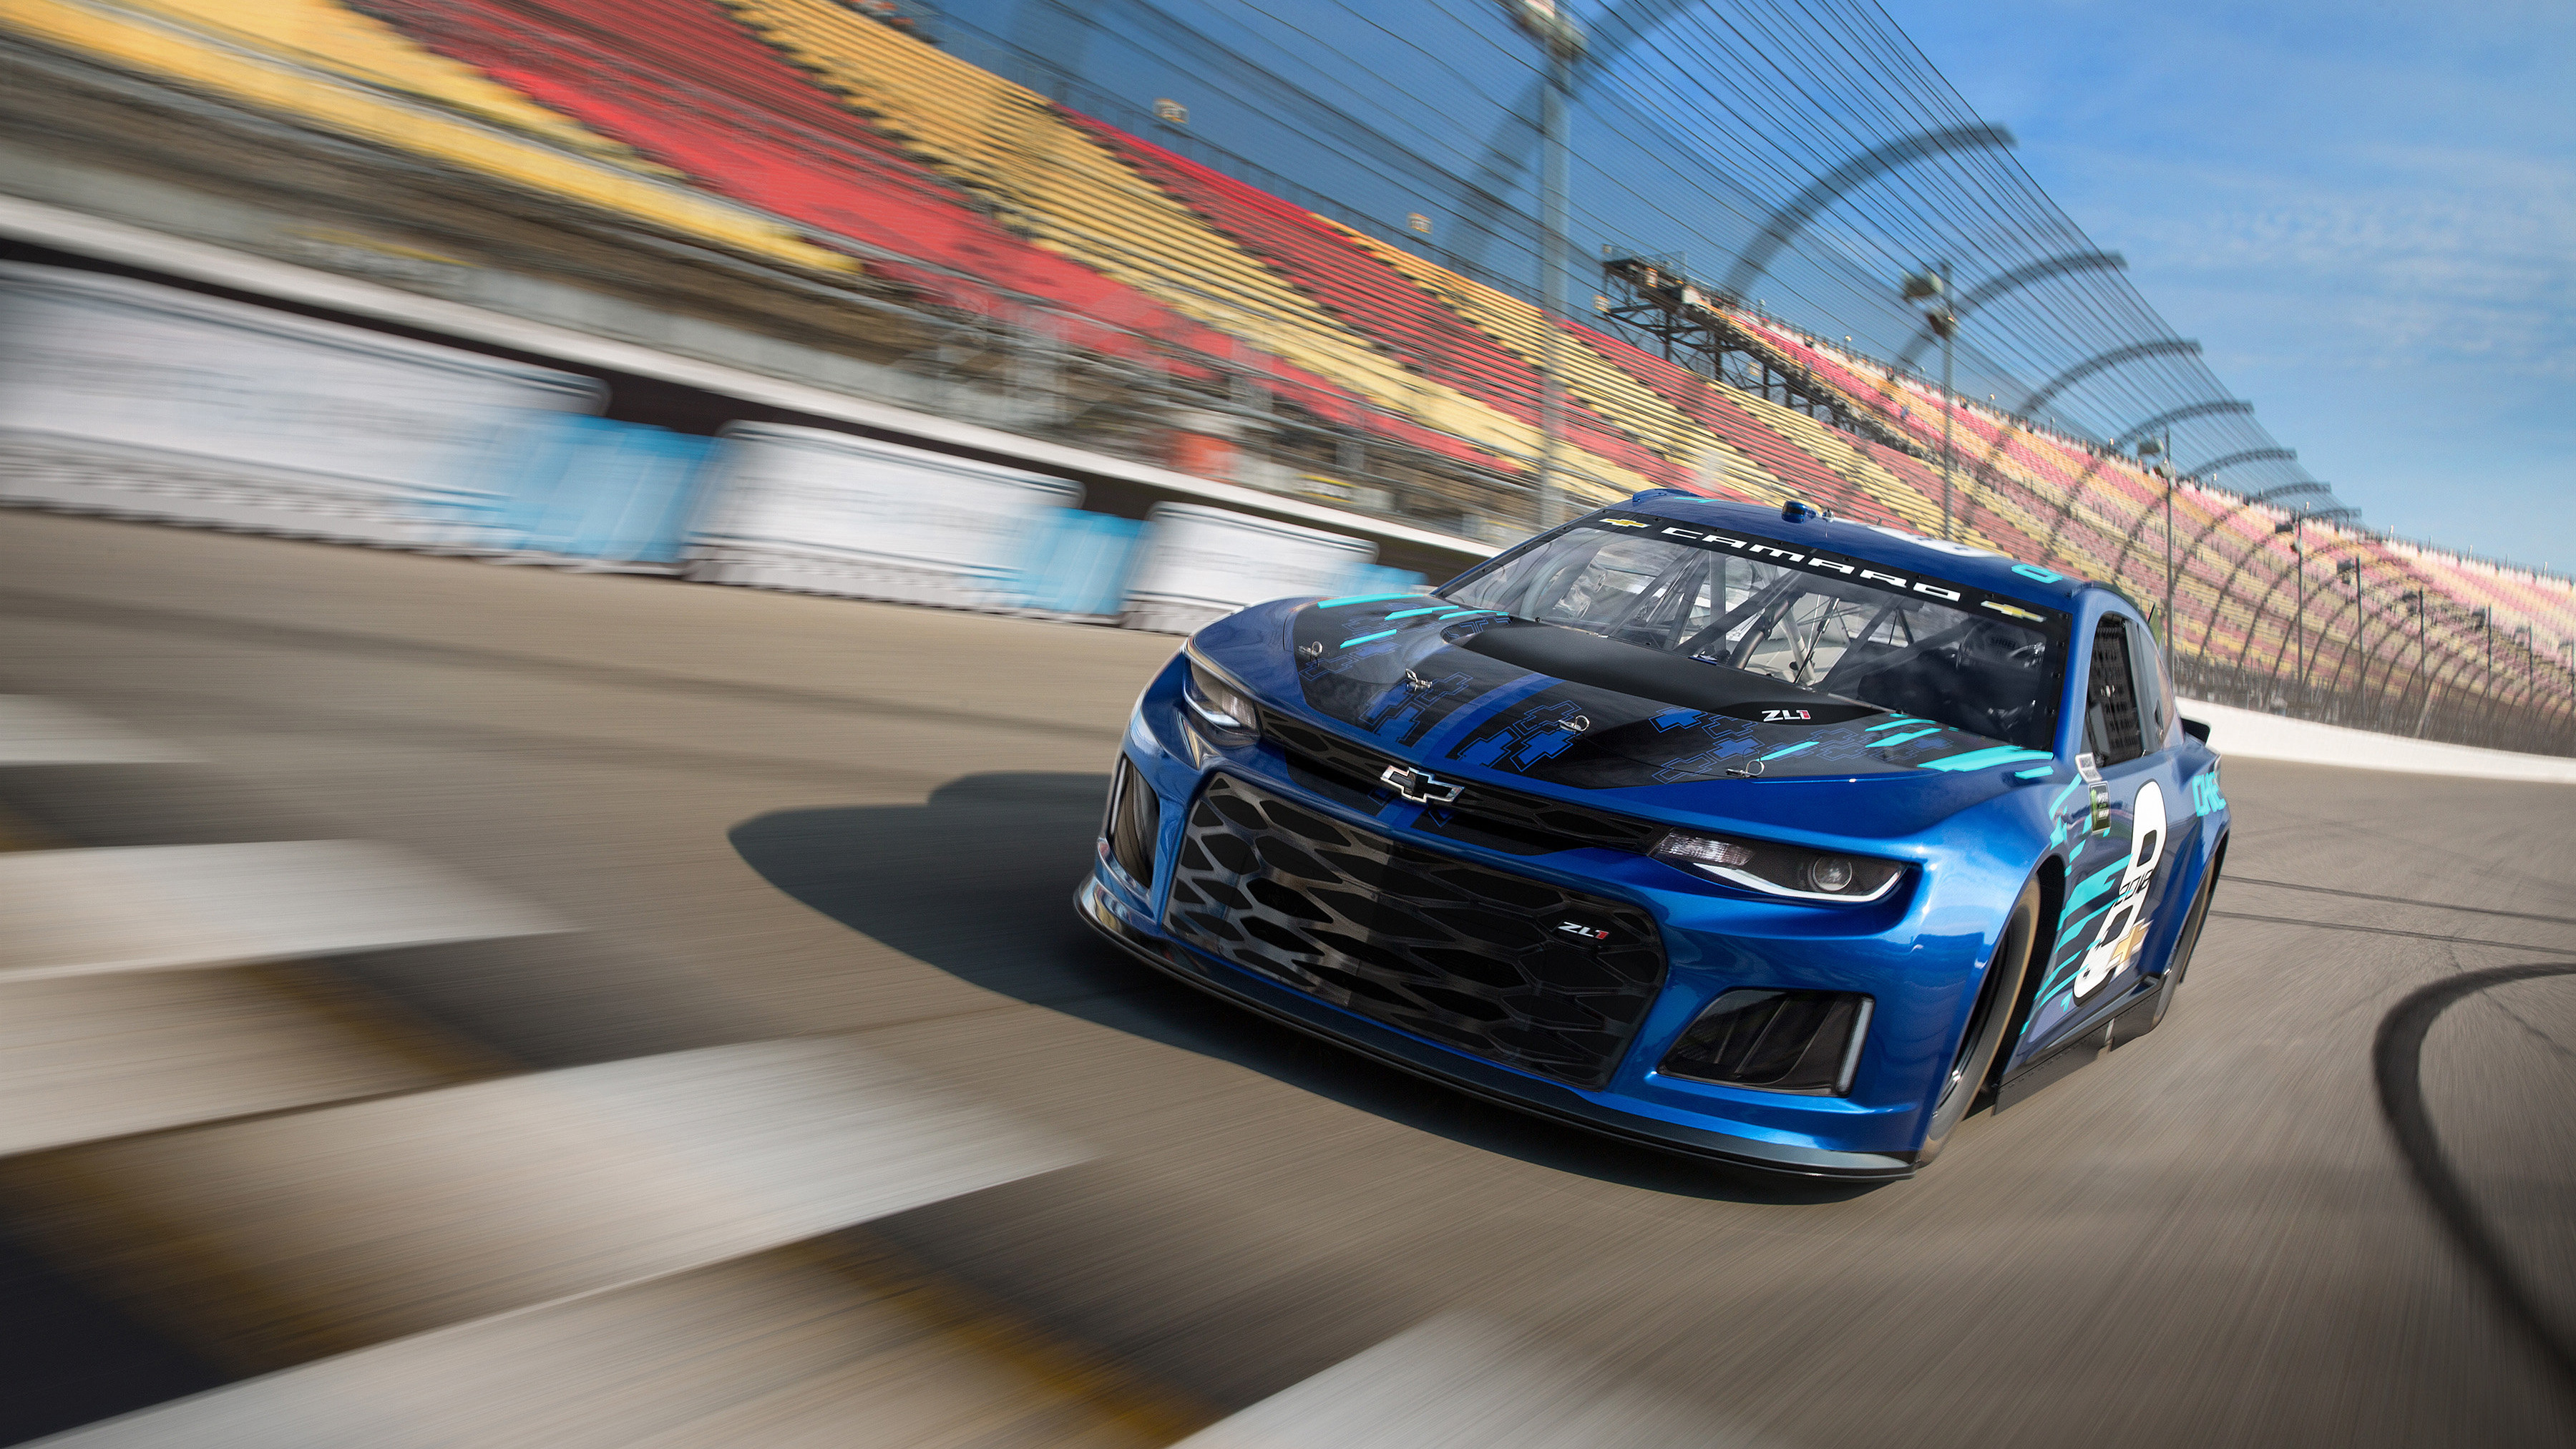 2018 Chevrolet Camaro Zl1 Nascar Race Car Wallpaper Hd